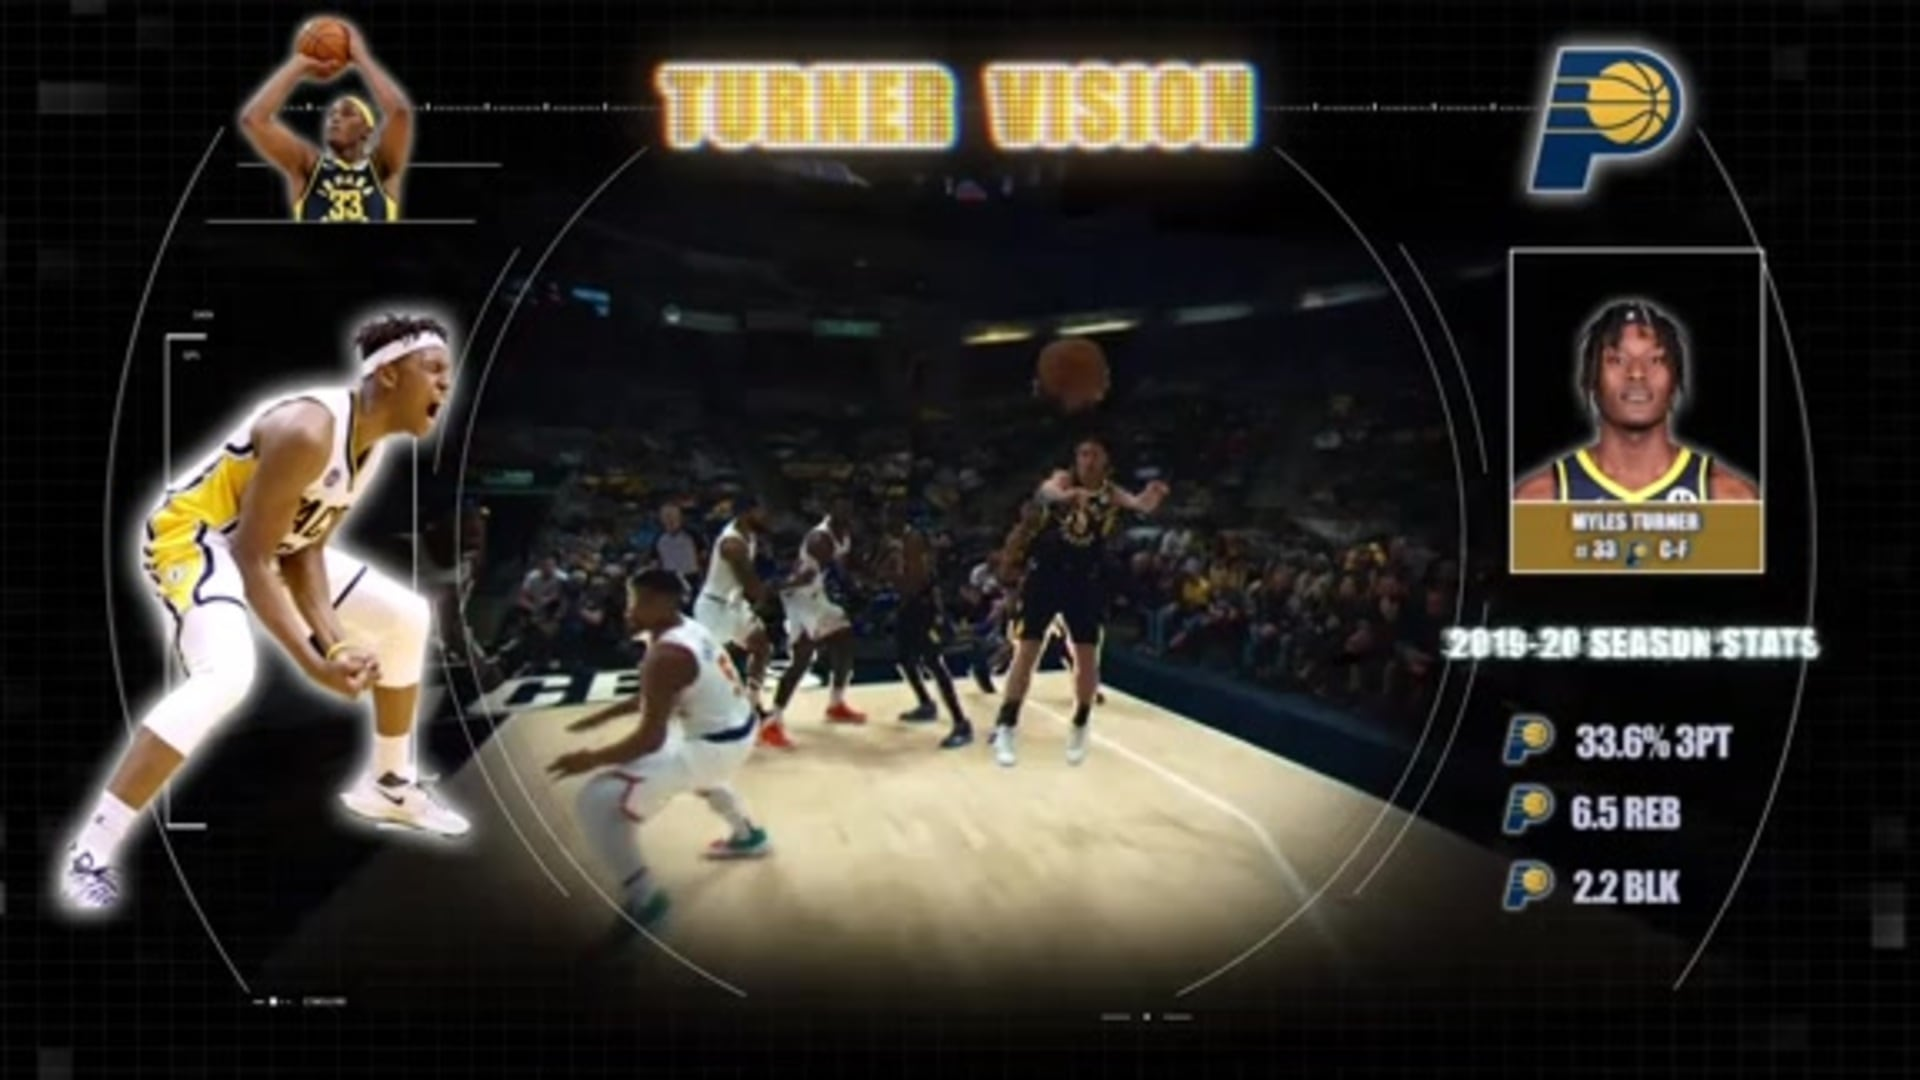 Intel TrueView: Myles Turner